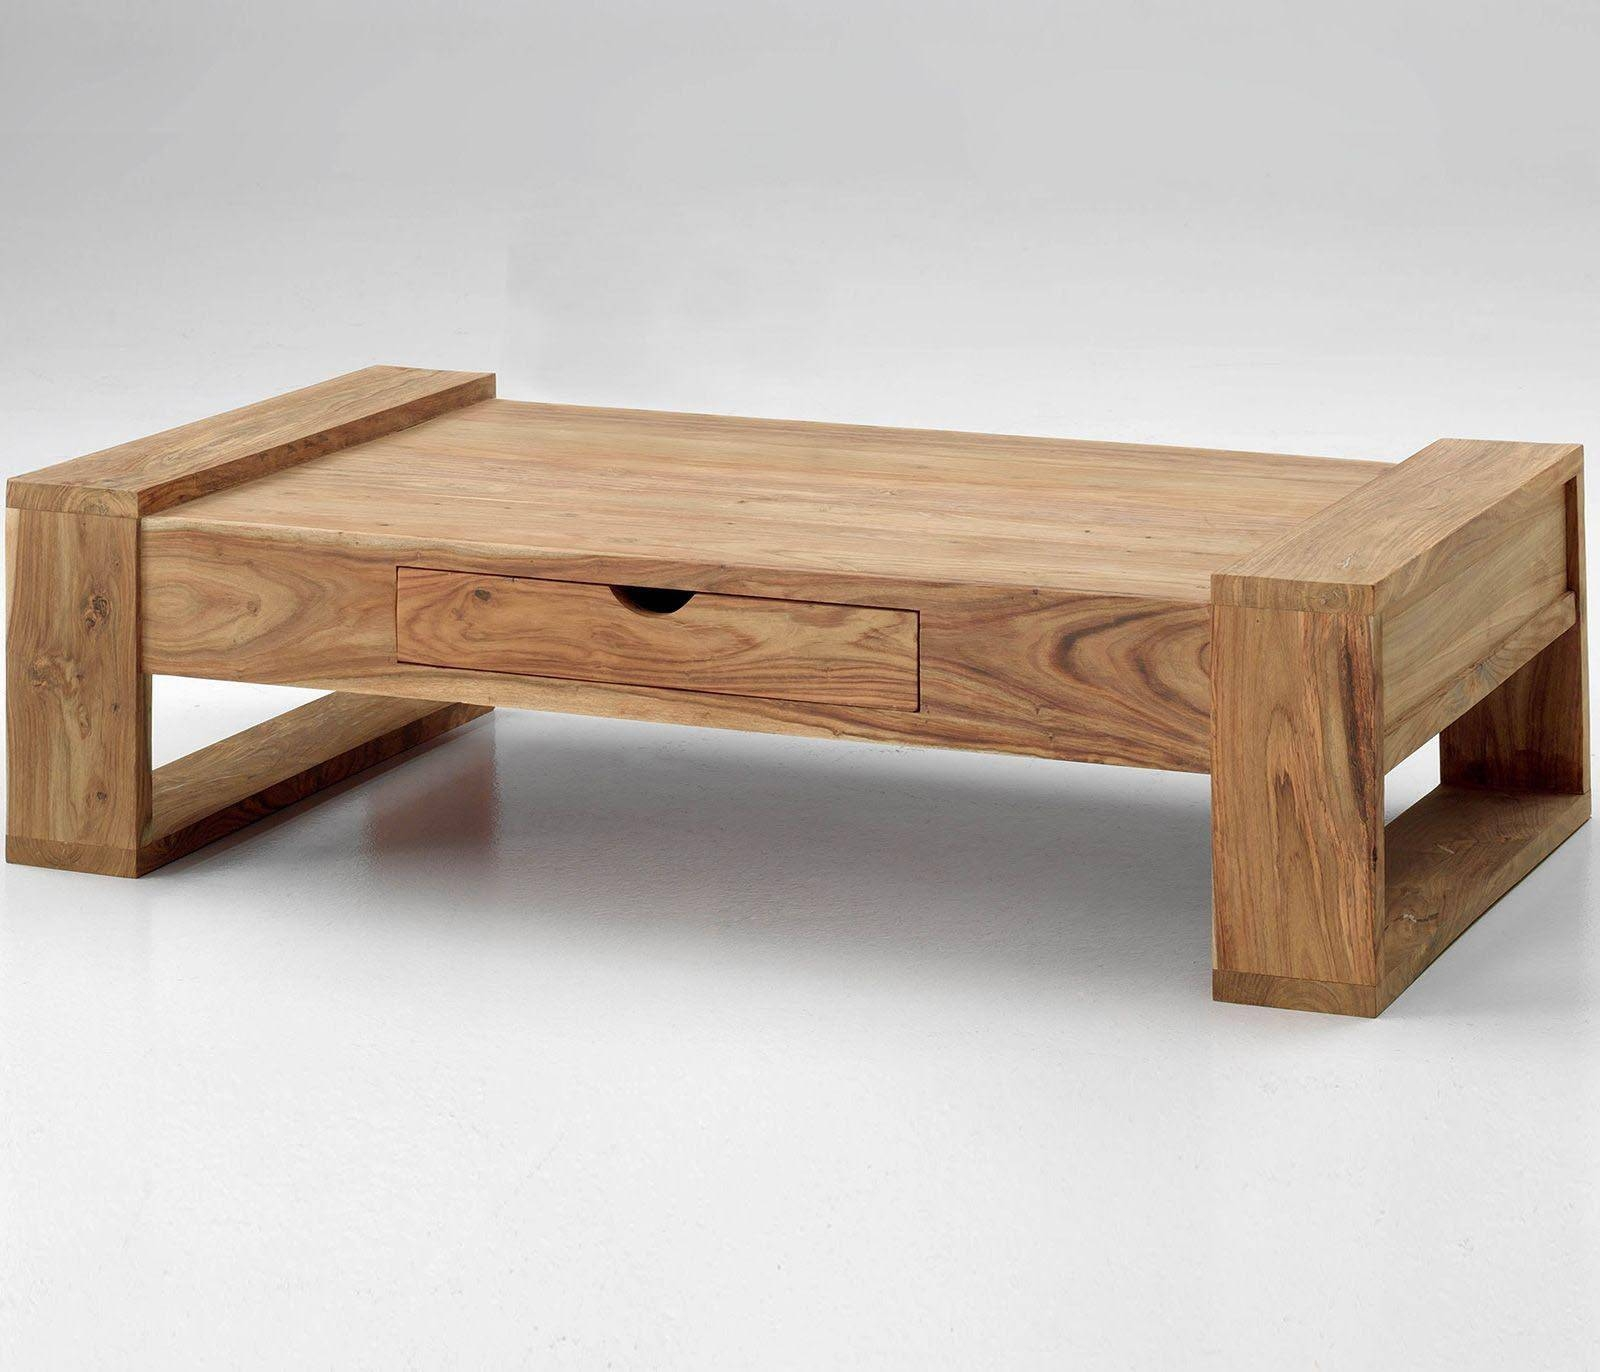 Square Low Coffee Table | Coffee Table Design Ideas within Square Low Coffee Tables (Image 18 of 20)